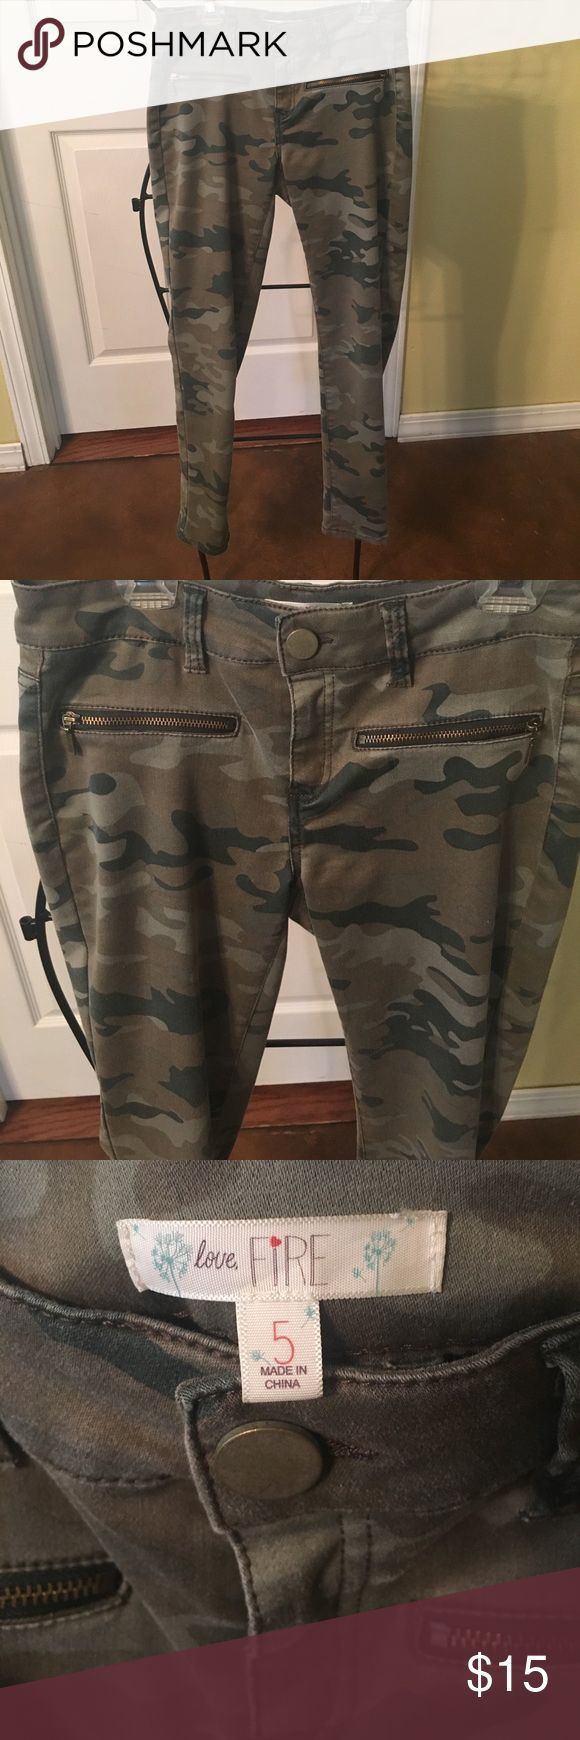 Cute, designer camouflage jeans. Worn once. Cute, designer camouflage jeans with front zipper detail. Worn once. love fire Jeans Skinny